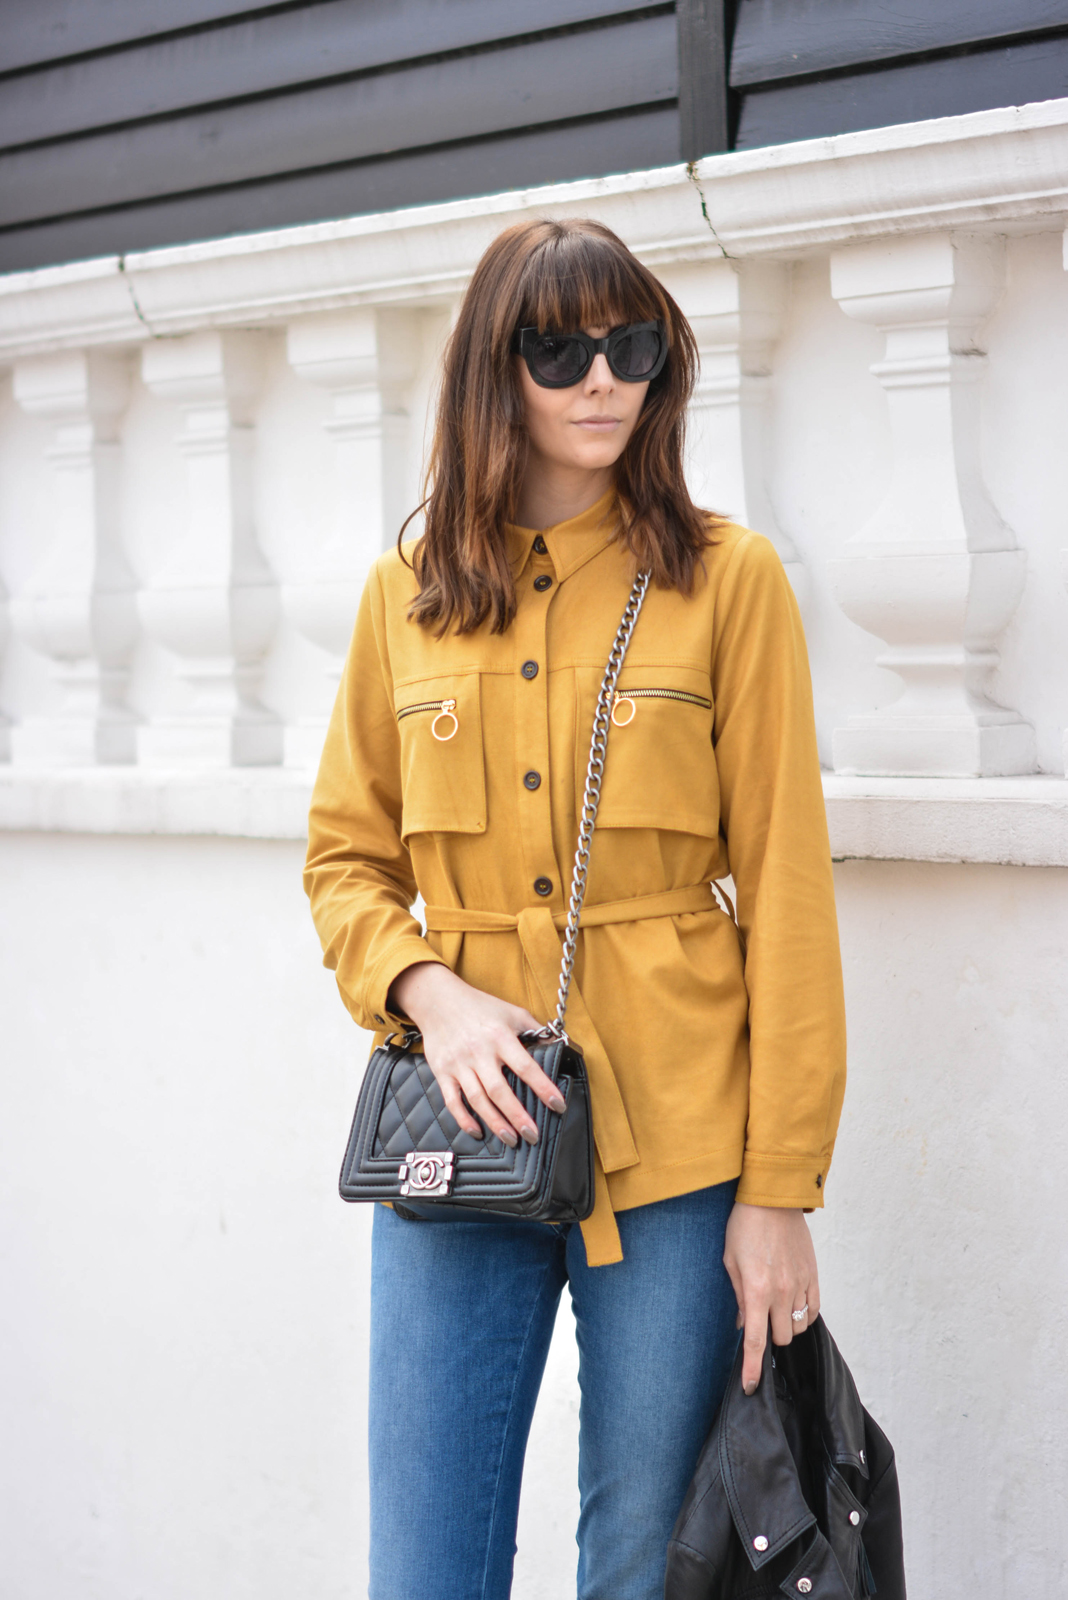 EJSTYLE - Emma Hill, H&M tan suedette shirt, 70s shirt, M&S straight cut jeans, Chanel Boy Bag